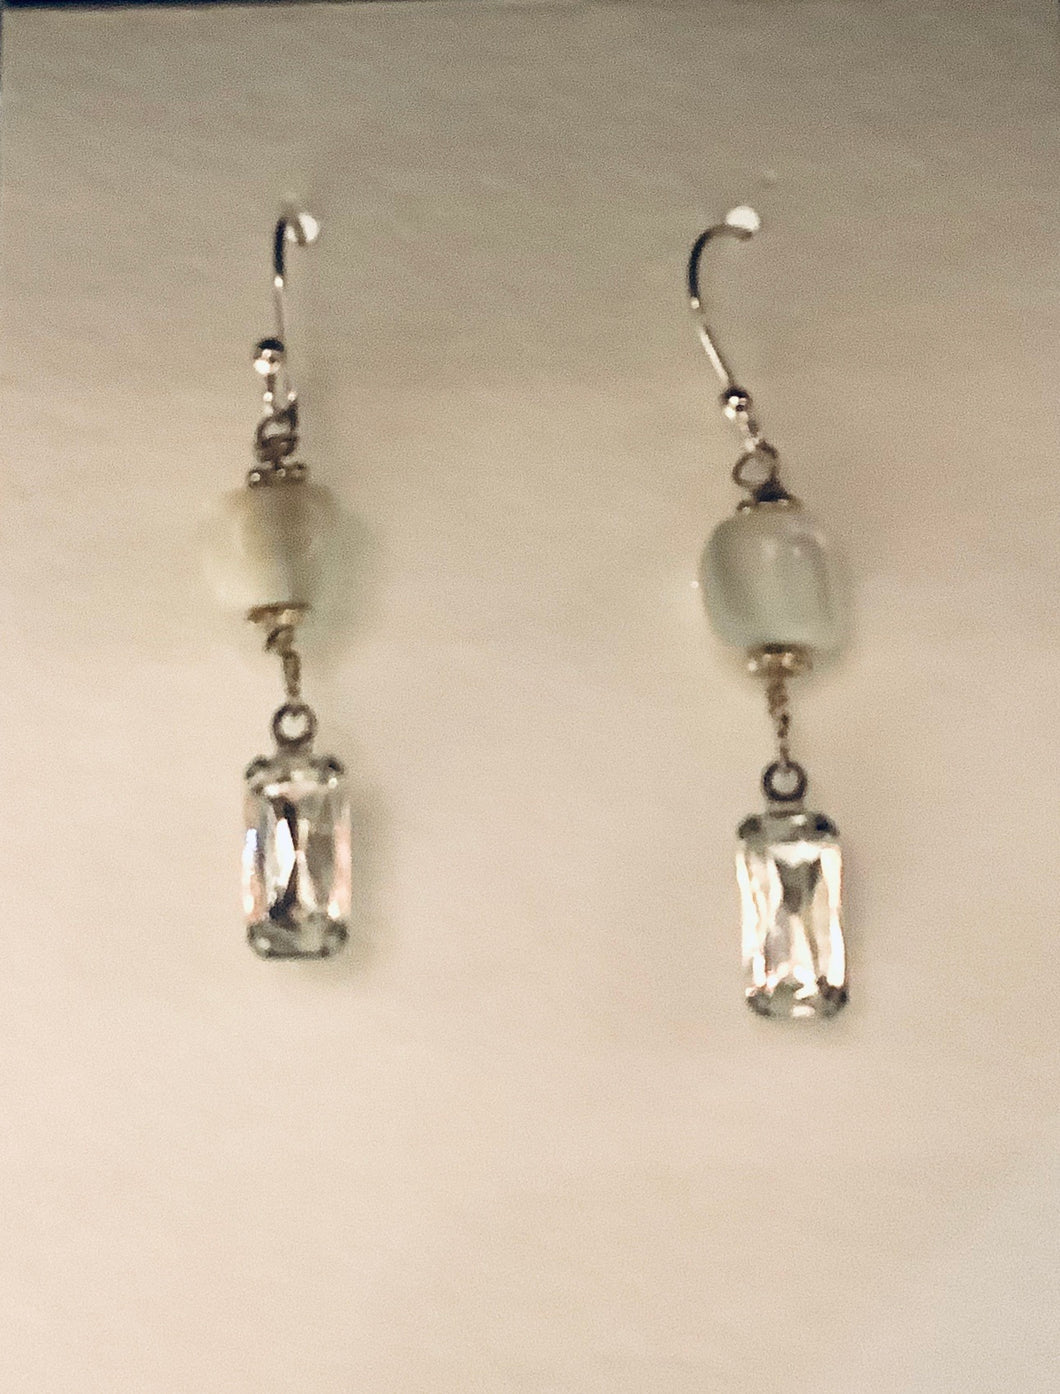 Earrings - Sterling Silver French Wires with Vintage Mother of Pearl Beads and Vintage Crystal